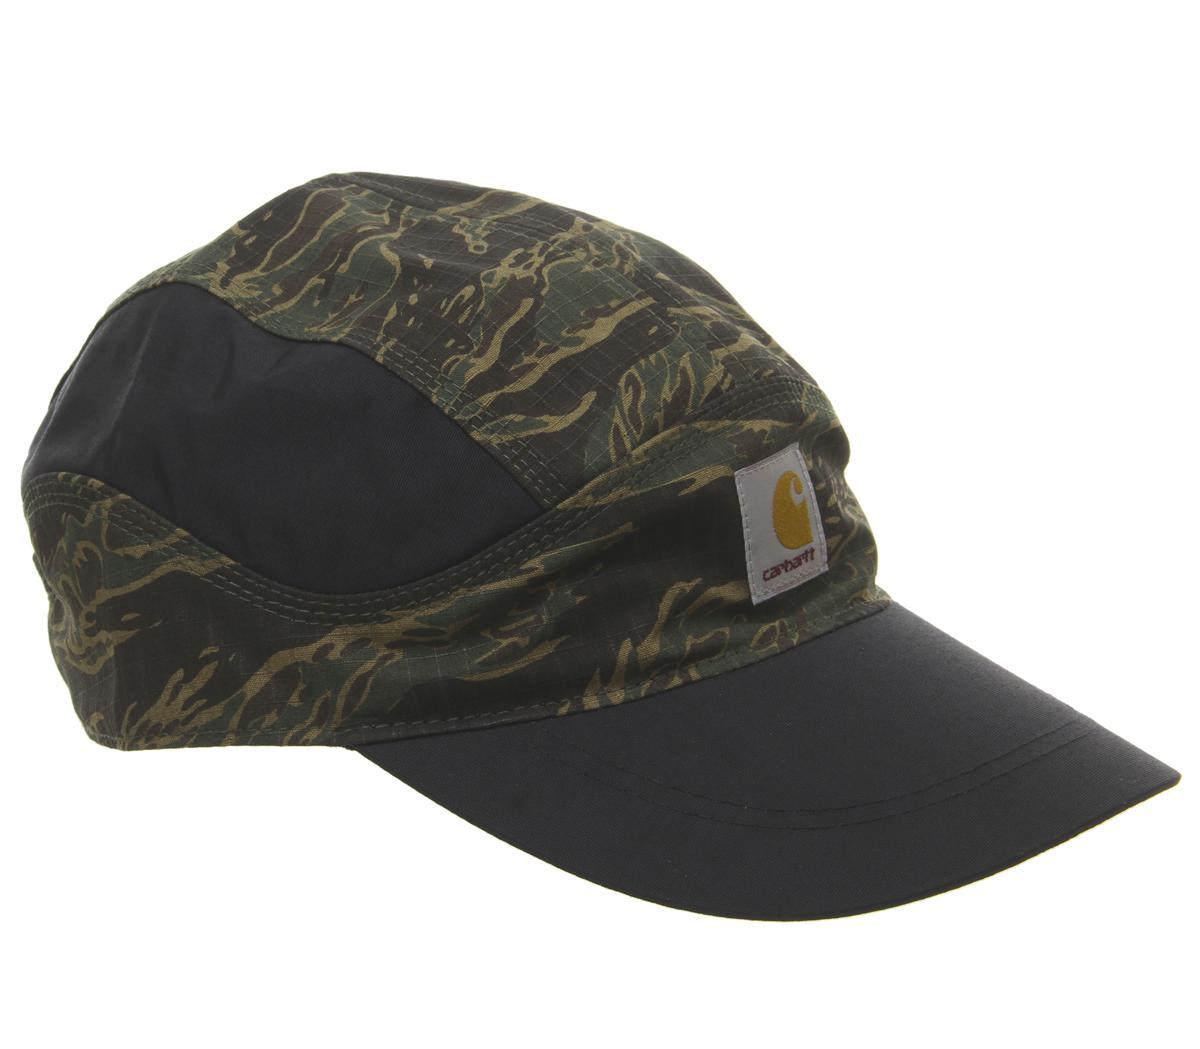 Nike Carhartt U Nrg Tlwd Cap Ch Camo in Green for Men - Lyst ae585079135a